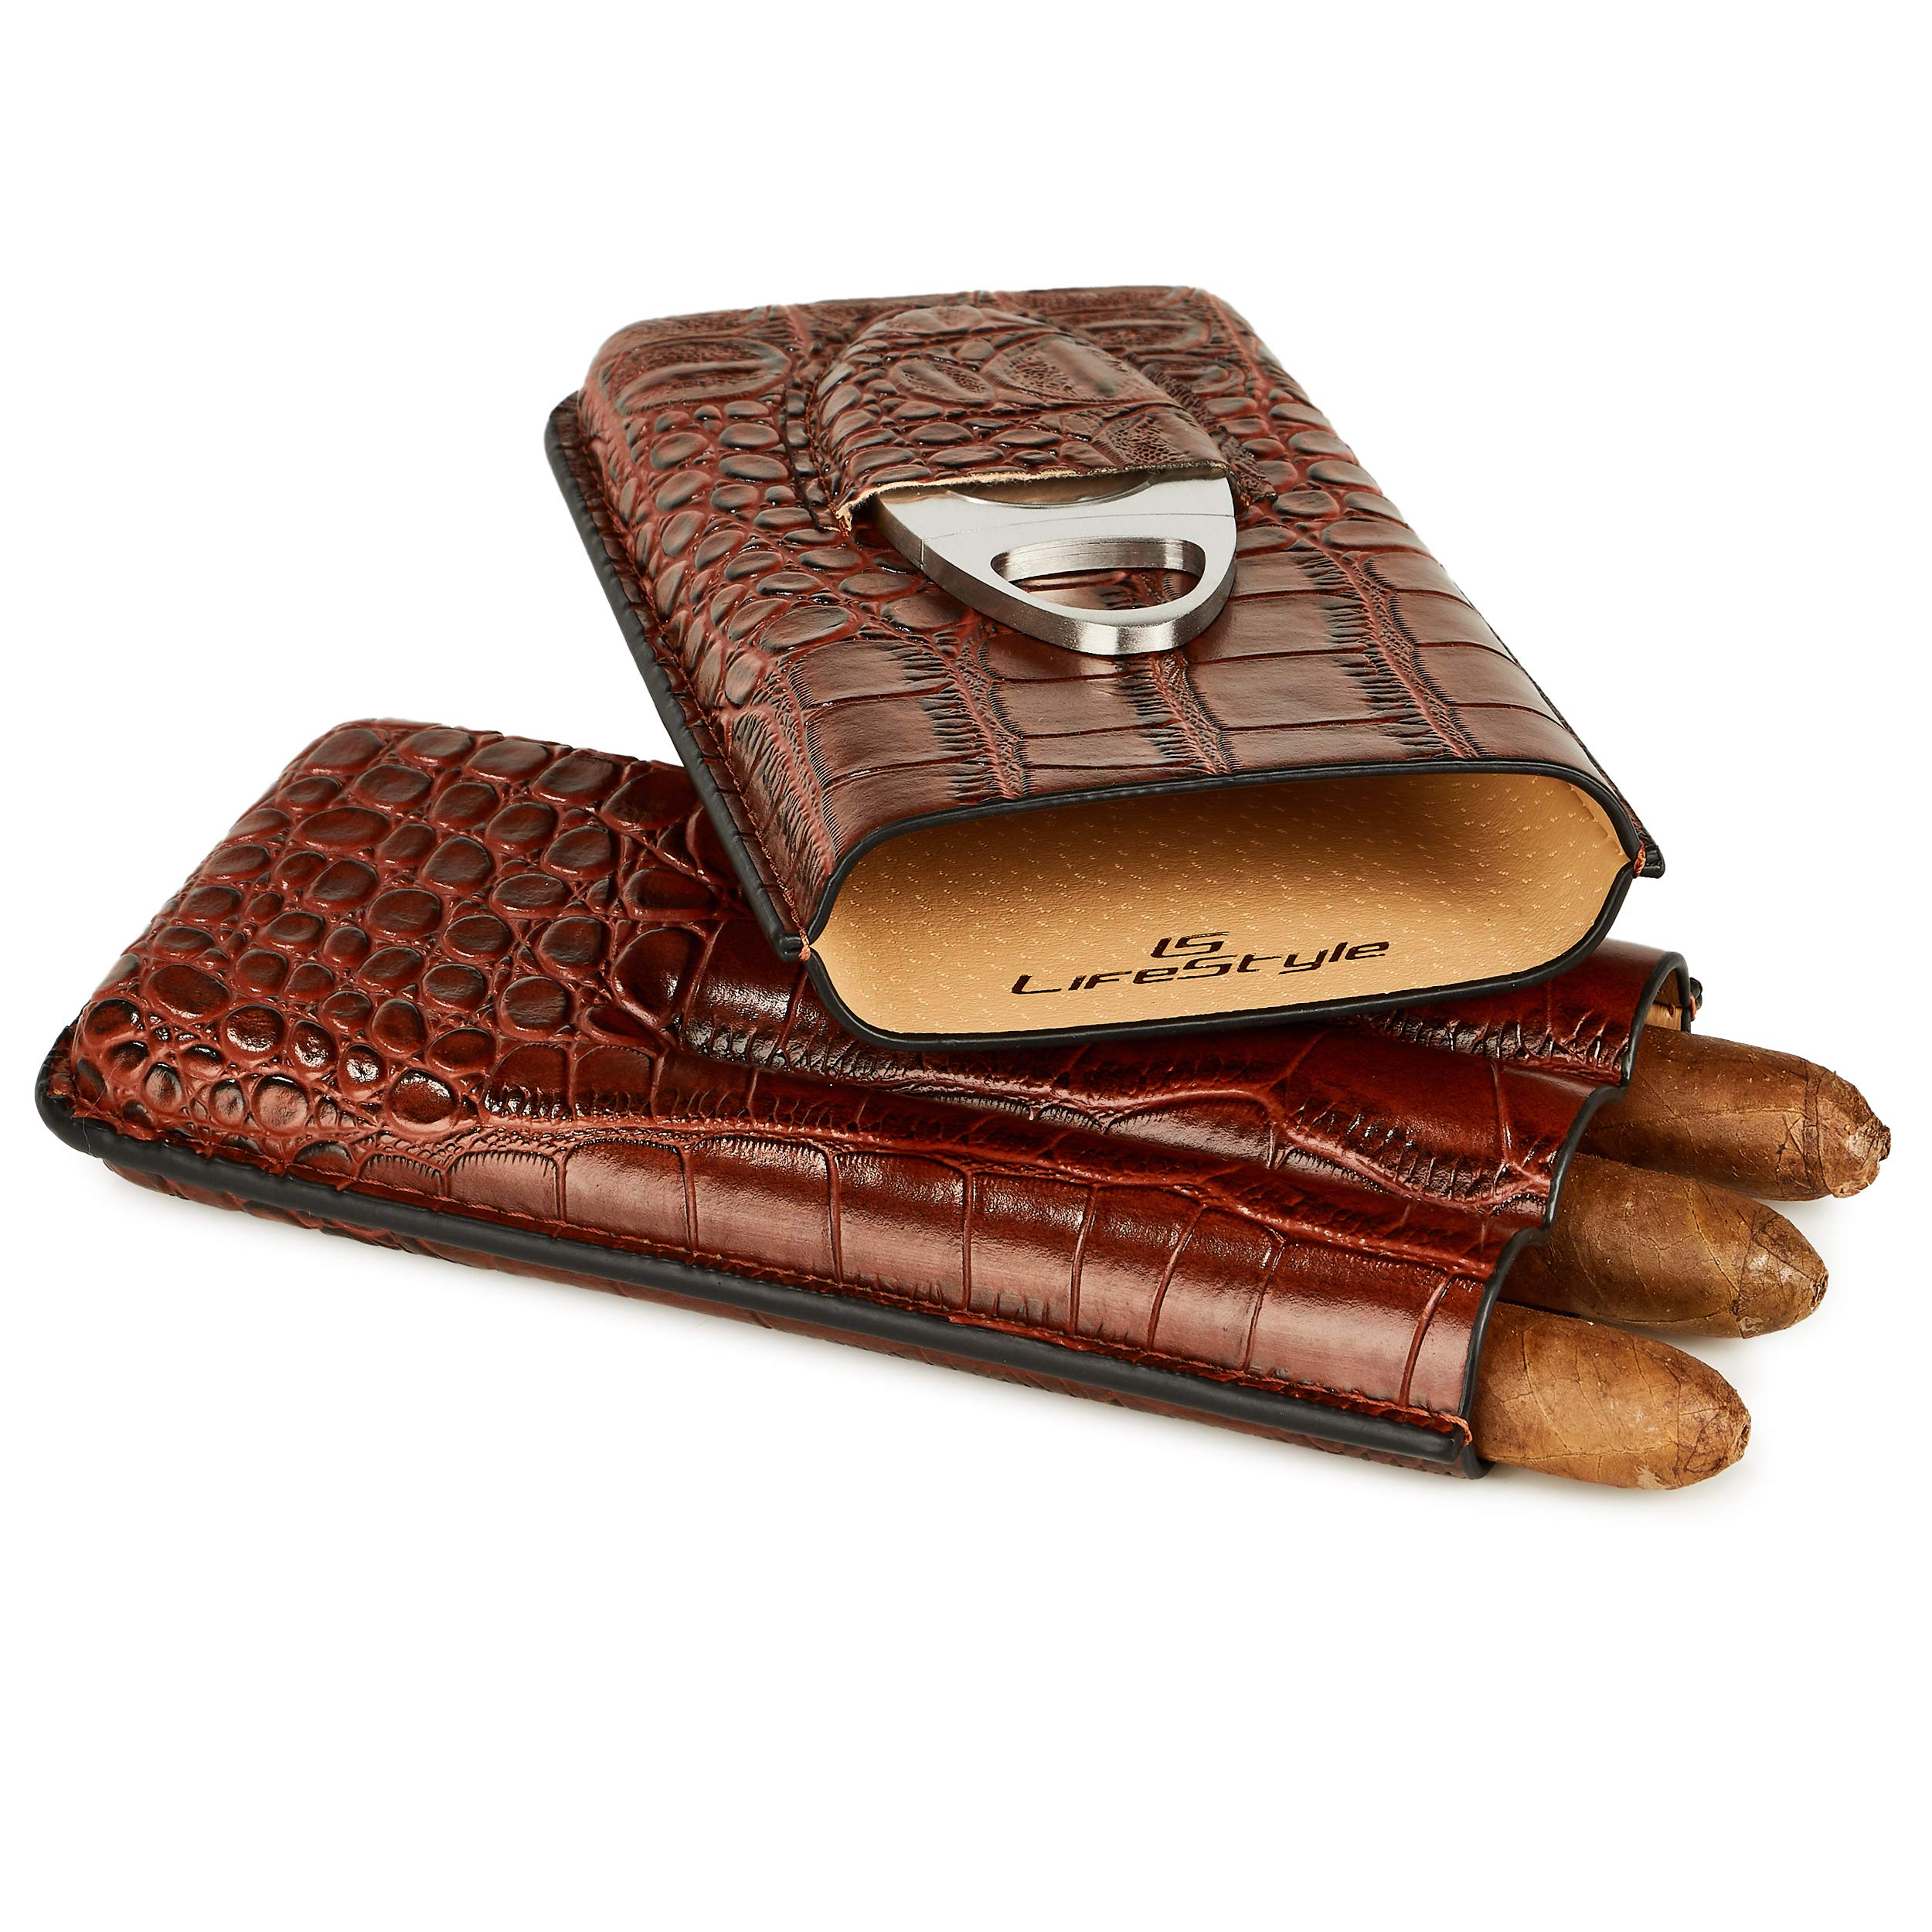 LS Lifestyle Leather Cigar Case - 3 Tube Travel Humidor with Stainless Steel Cutter (Brown Leather)